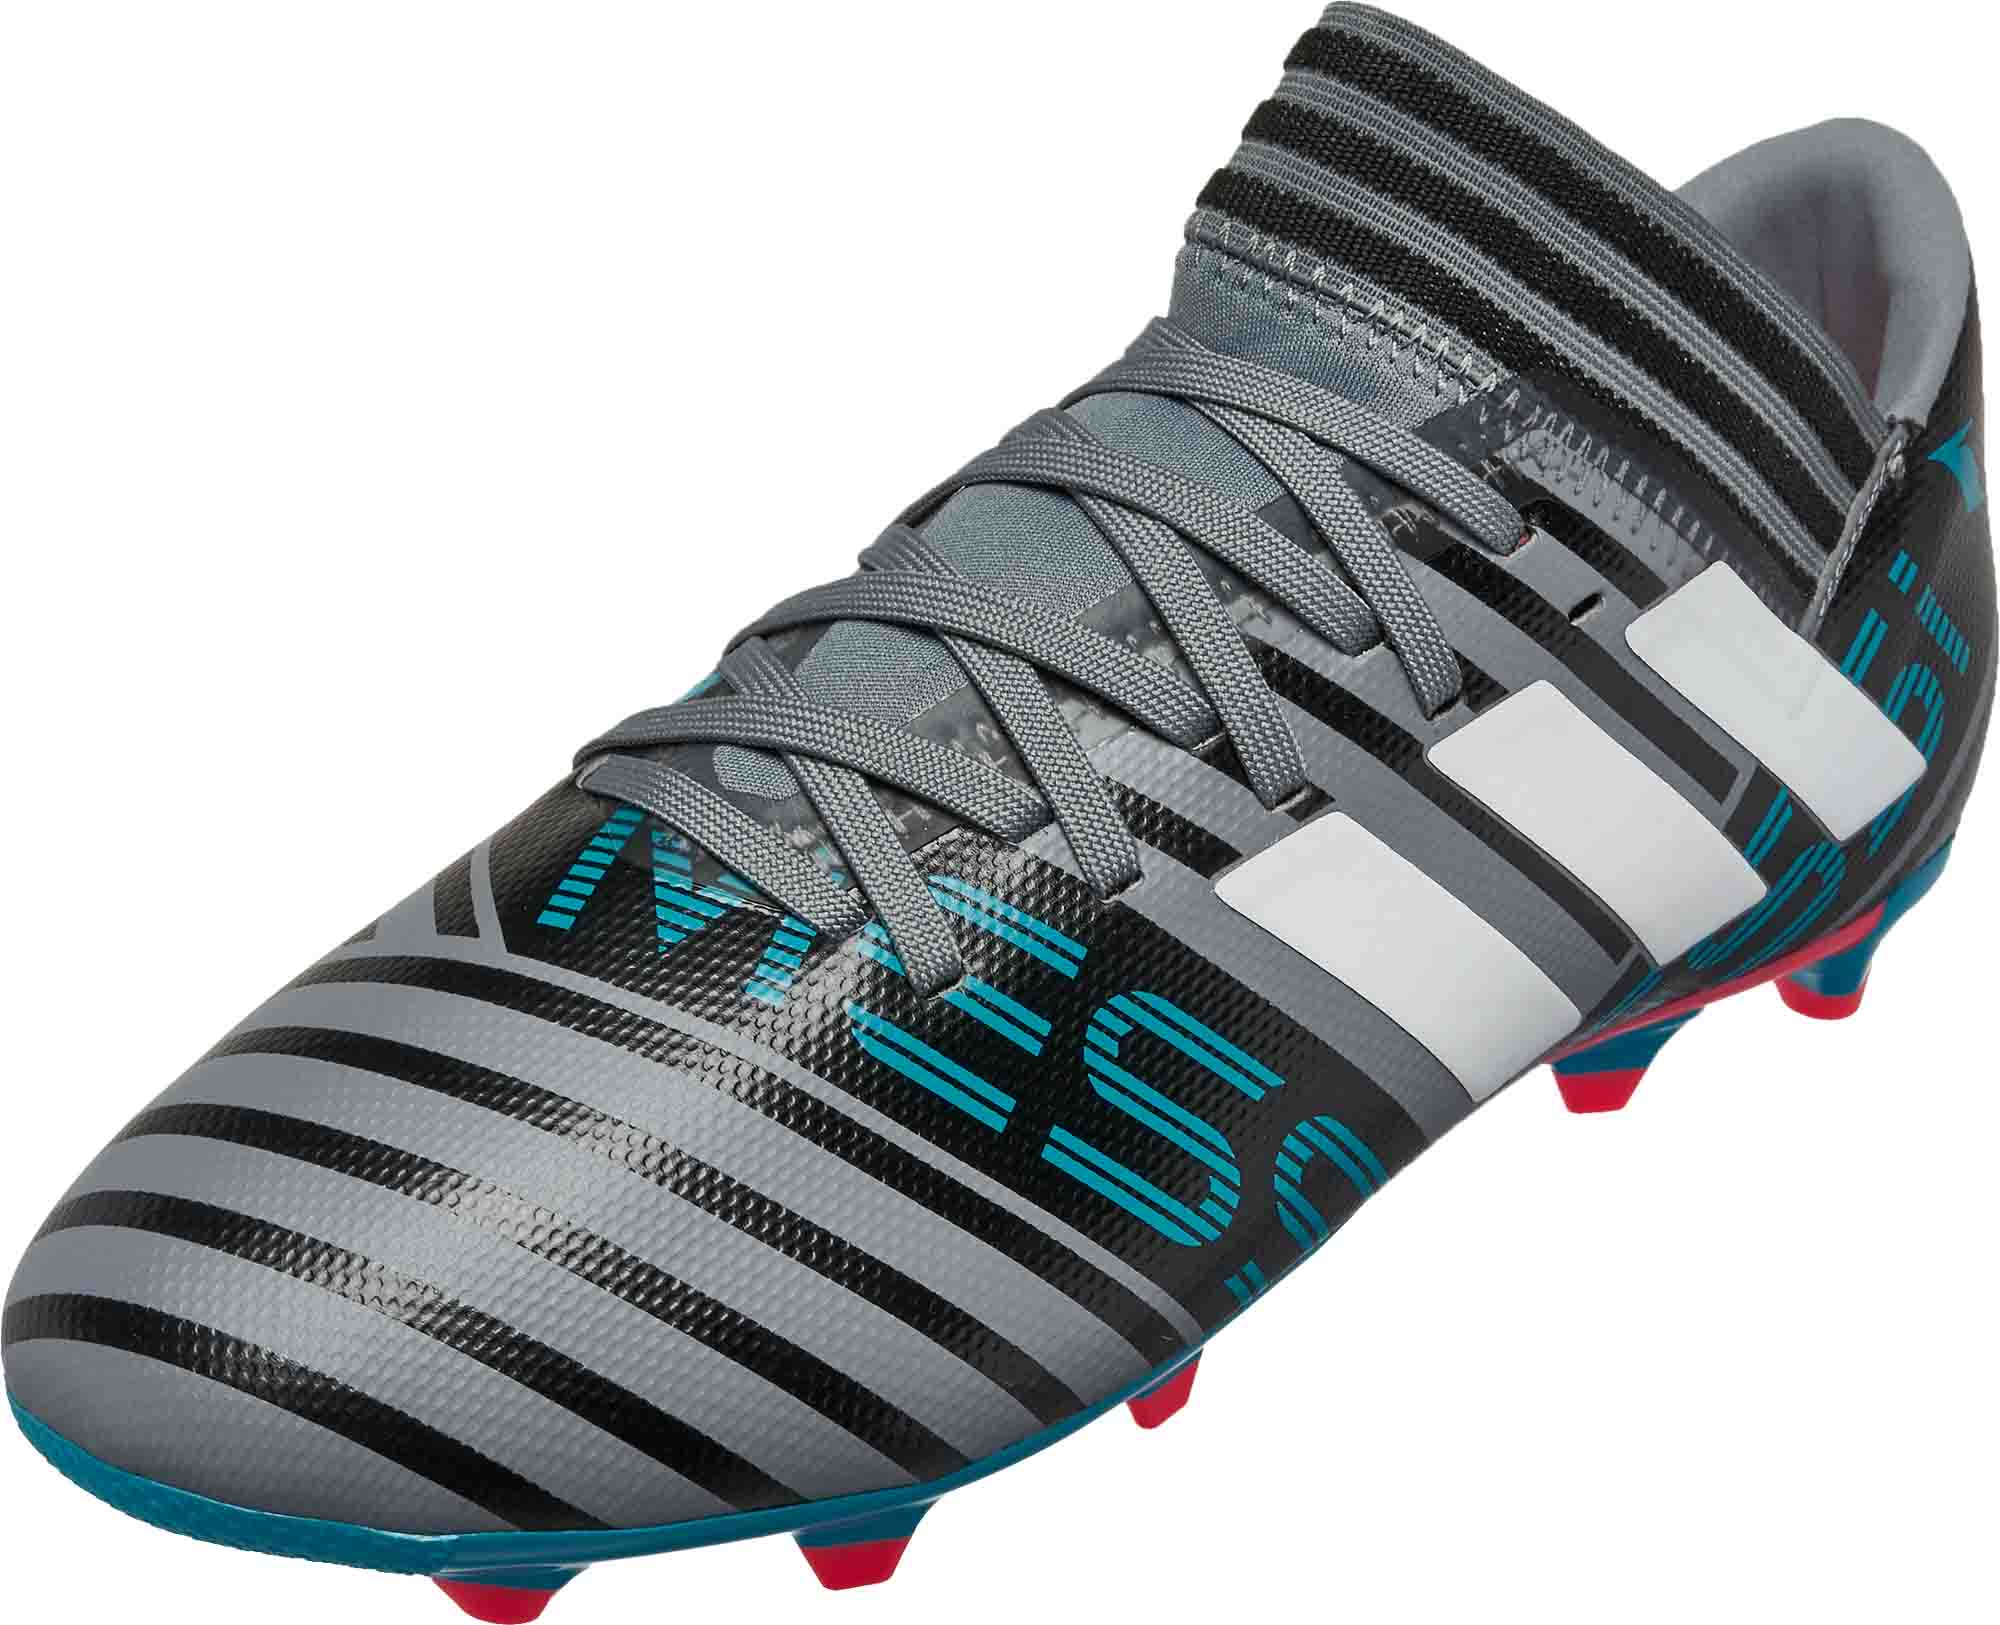 ae664dad3a42 Youth adidas Messi Nemeziz 17.3 - Grey and Blue - SoccerPro